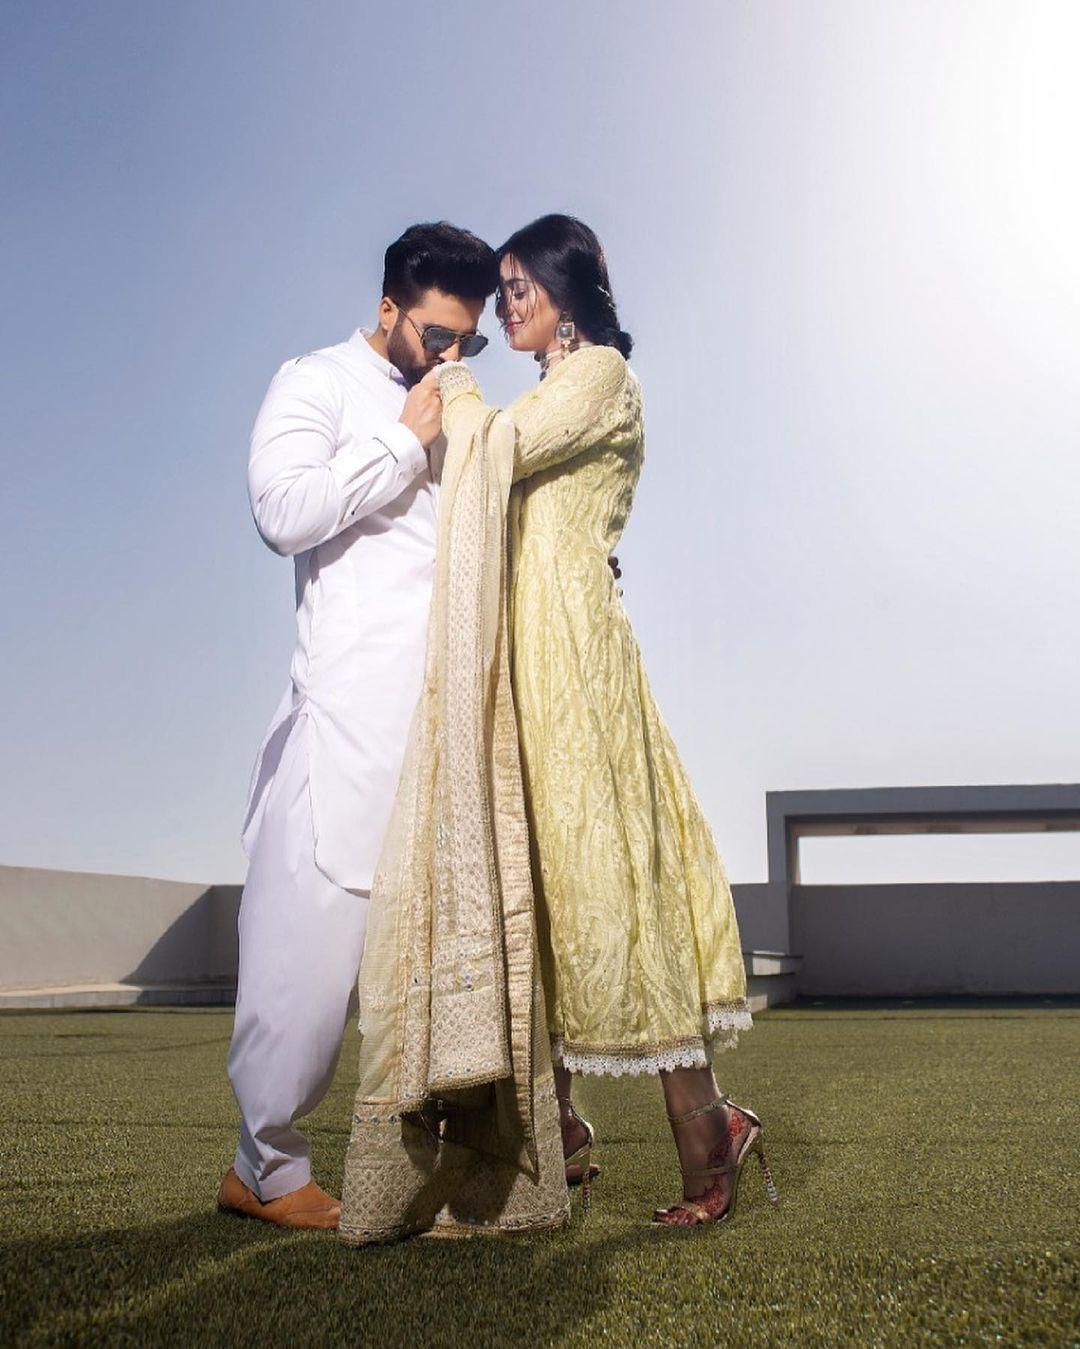 Sarah Khan and Falak Shabir have always set the couple goals for everyone and their pictures are worth seeing. From exchanging wide and bright smiles to the beautiful flowers Falak brings for Sarah, every gesture instantly grabs our attention in seconds. As the couple is enjoying this time of Sarah's motherhood, we cannot miss out on their latest photoshoot. The couple took these clicks to social media on this Eid. Check out how Sarah and Falak flaunt perfection in these pictures! Sarah and Falak Look Fascinating in Latest Photoshoot - Pictures! Sarah Khan and Falak Shabir make one of those celebrity couples who keep posting on Instagram. From having good leisure time at home to Falak presenting Sarah with flowers every day, these activities instantly grab the attention of fans. The way they celebrate every moment of togetherness gives us a dreamy view of married life. Sarah also feels so lucky to have a husband like Falak who always makes her feel special. Although there are many celebrity couples who set goals, however, we can bet that none of them will be like Sarah and Falak. This Eid, the duo celebrated Eid-ul-Fitr while having the best time together. As they never forget to share these moments with their fans, so this photoshoot is something you must not miss. Check out these fascinating clicks! Read more: Sarah Khan and Falak Shabir Expecting Their First Baby? The couple is looking absolutely stunning in all three days look. On the first day of Eid, Falak and Sarah share light hues in dressing. On the second day, they have made it a message of love with Sarah's red wear while on the third day they flaunted light and bright hues of happiness. Well, that's not all! Here we have got some more sassy clicks of the couple from the latest brand photoshoot. Check it out! So, what do you think about the couple and their adorable looks? Don't forget to share your valuable feedback with us!